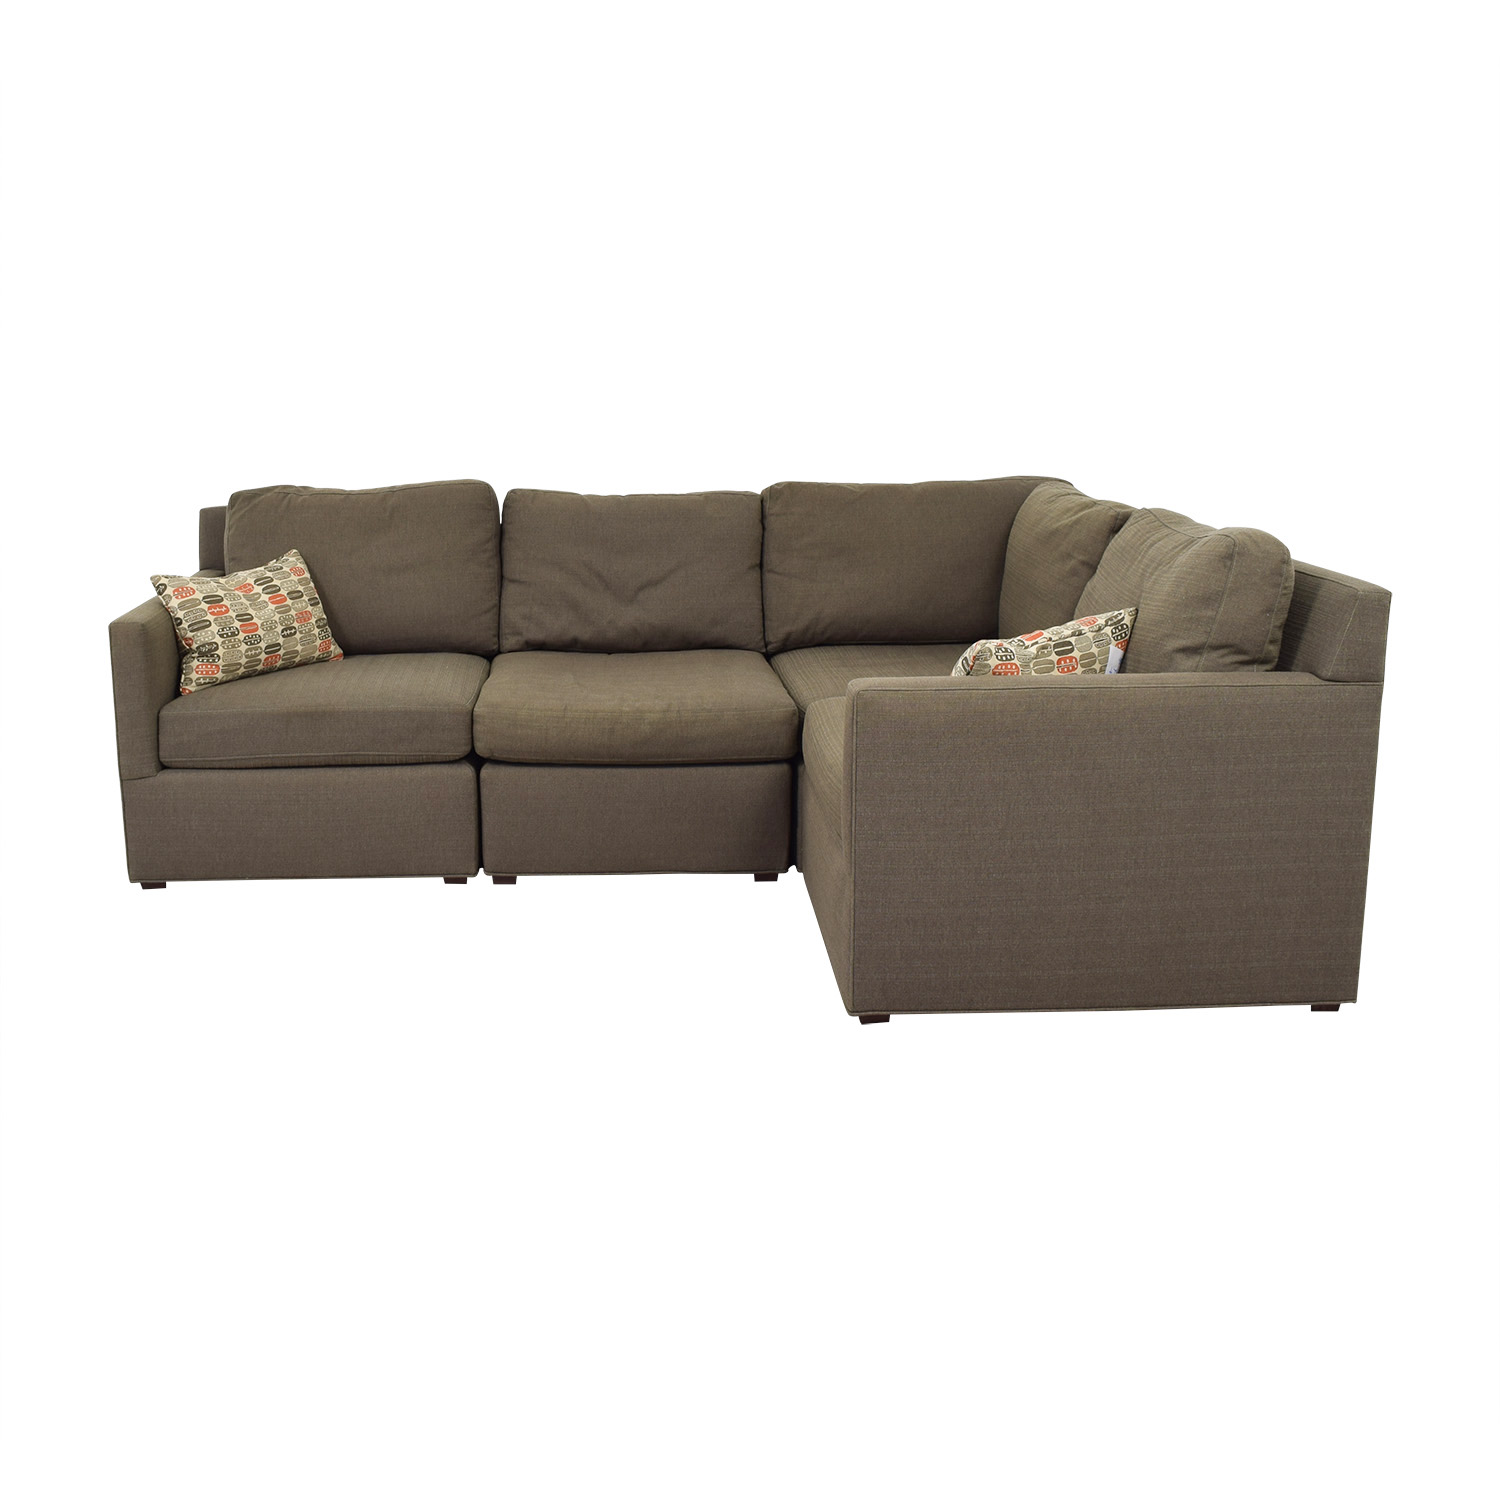 Crate & Barrel Crate & Barrel Grey L-Shaped Sectional price